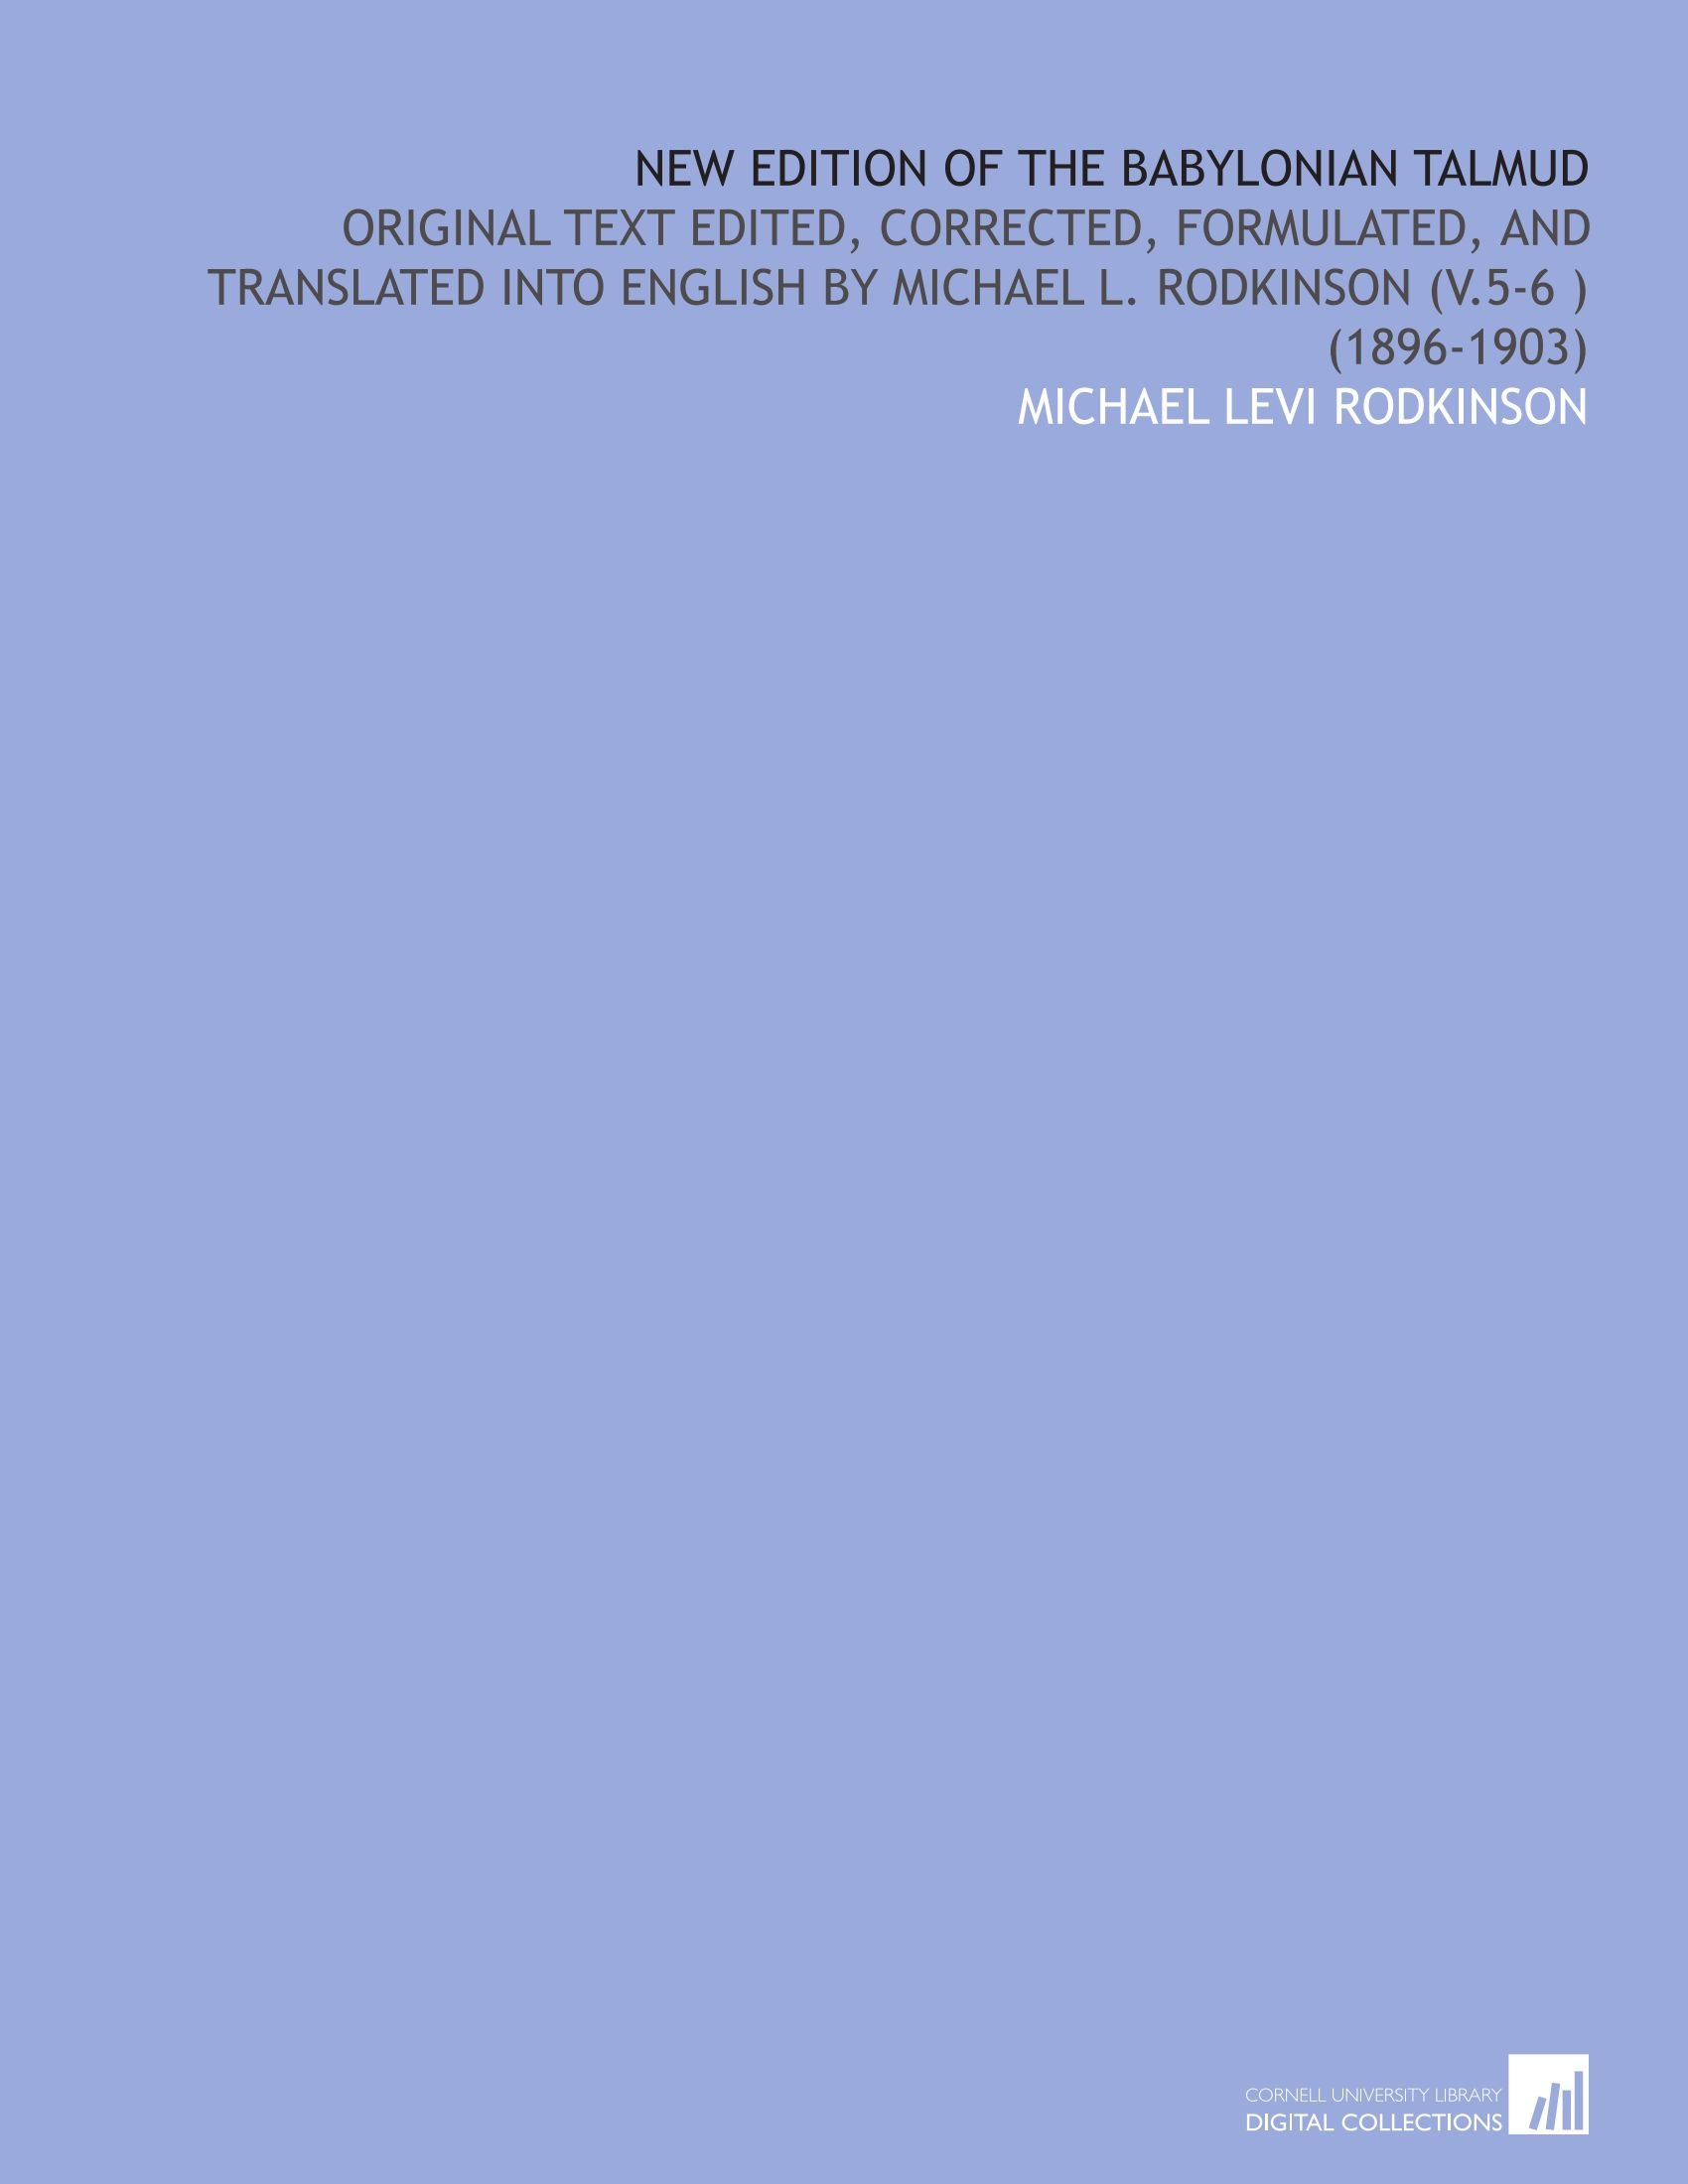 Download New Edition of the Babylonian Talmud: Original Text Edited, Corrected, Formulated, and Translated Into English by Michael L. Rodkinson (V.5-6 )  (1896-1903) ebook